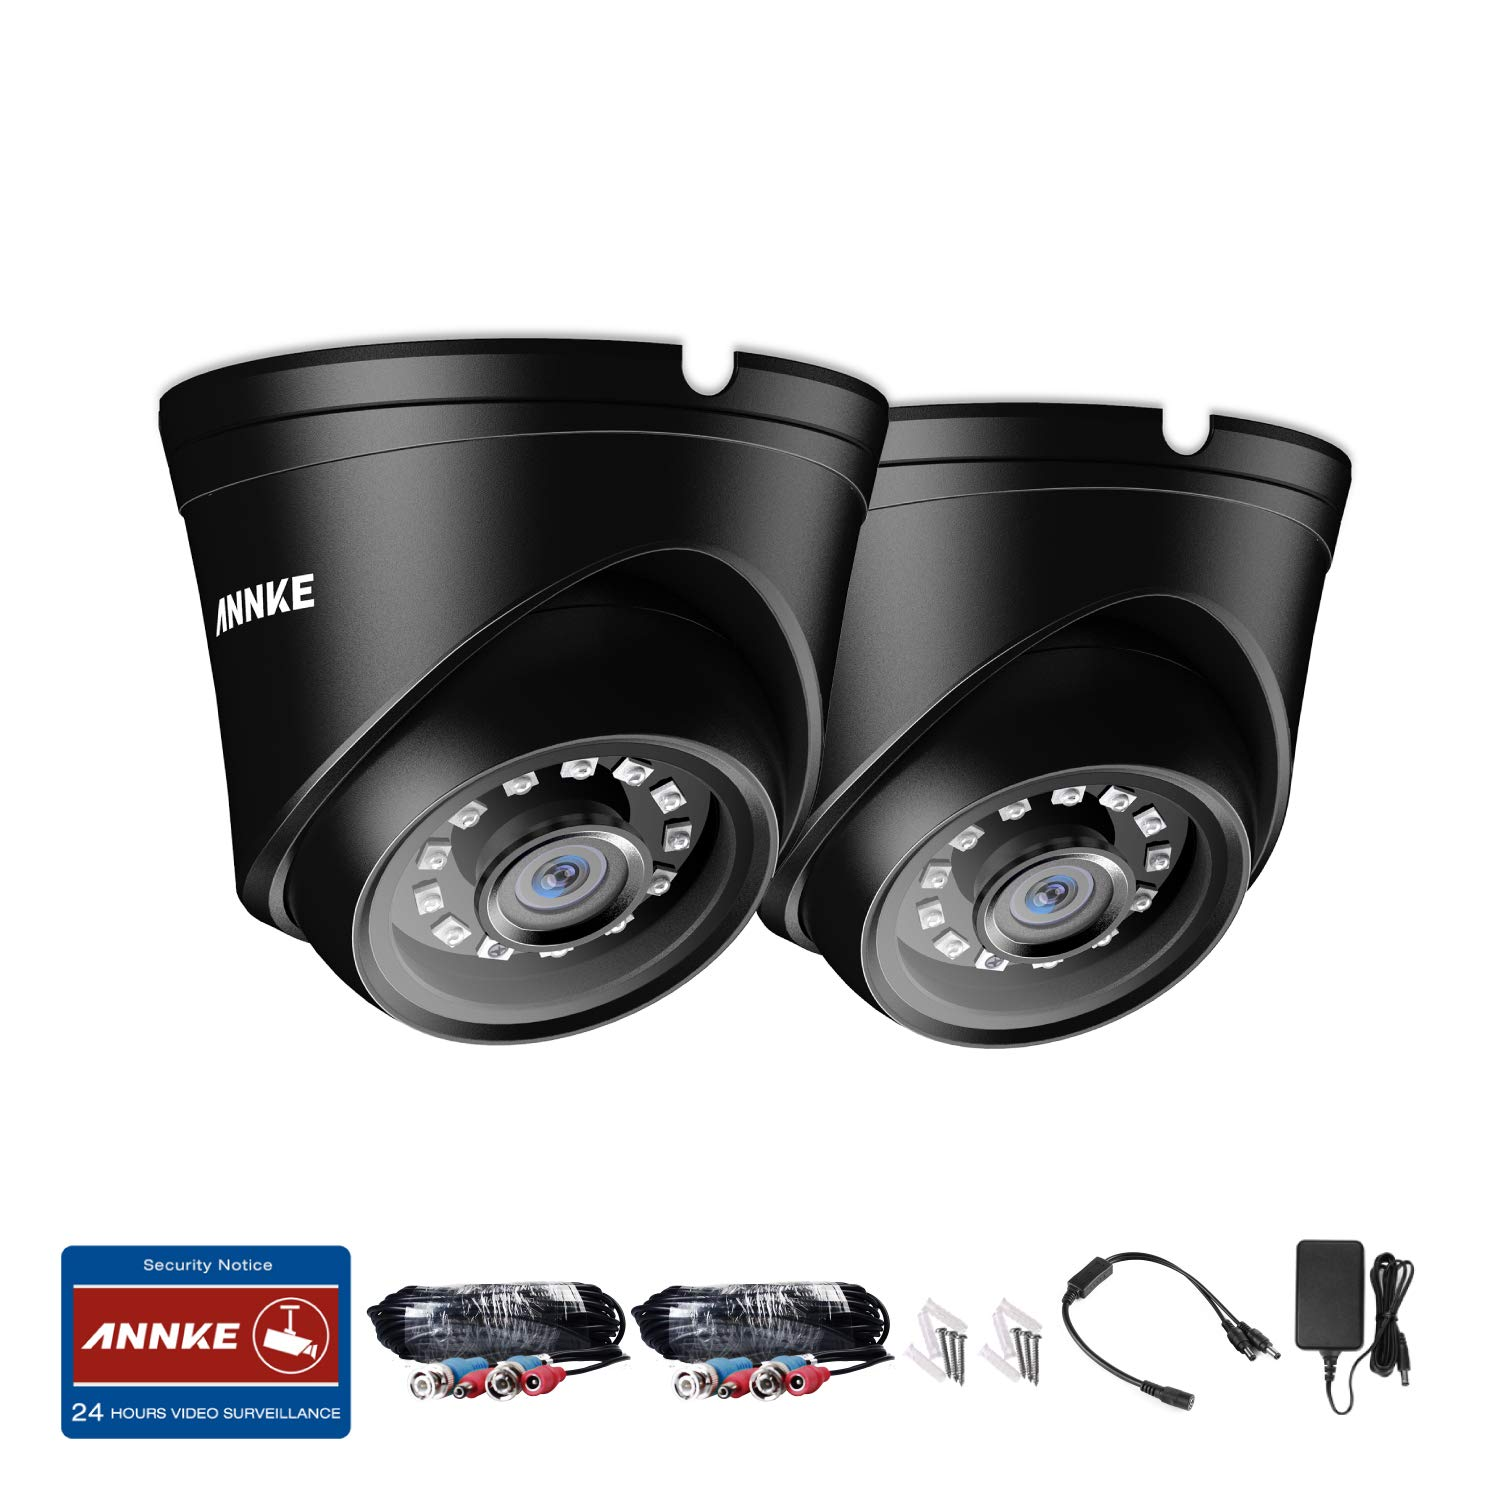 ANNKE 2 Packed 1080P Security Camera 2.0MP Hi-Resolution Indoor Outdoor Dome CCTV Camera with 100ft Super Night Vision, IP66 Weatherproof Housing, Smart IR-Cut